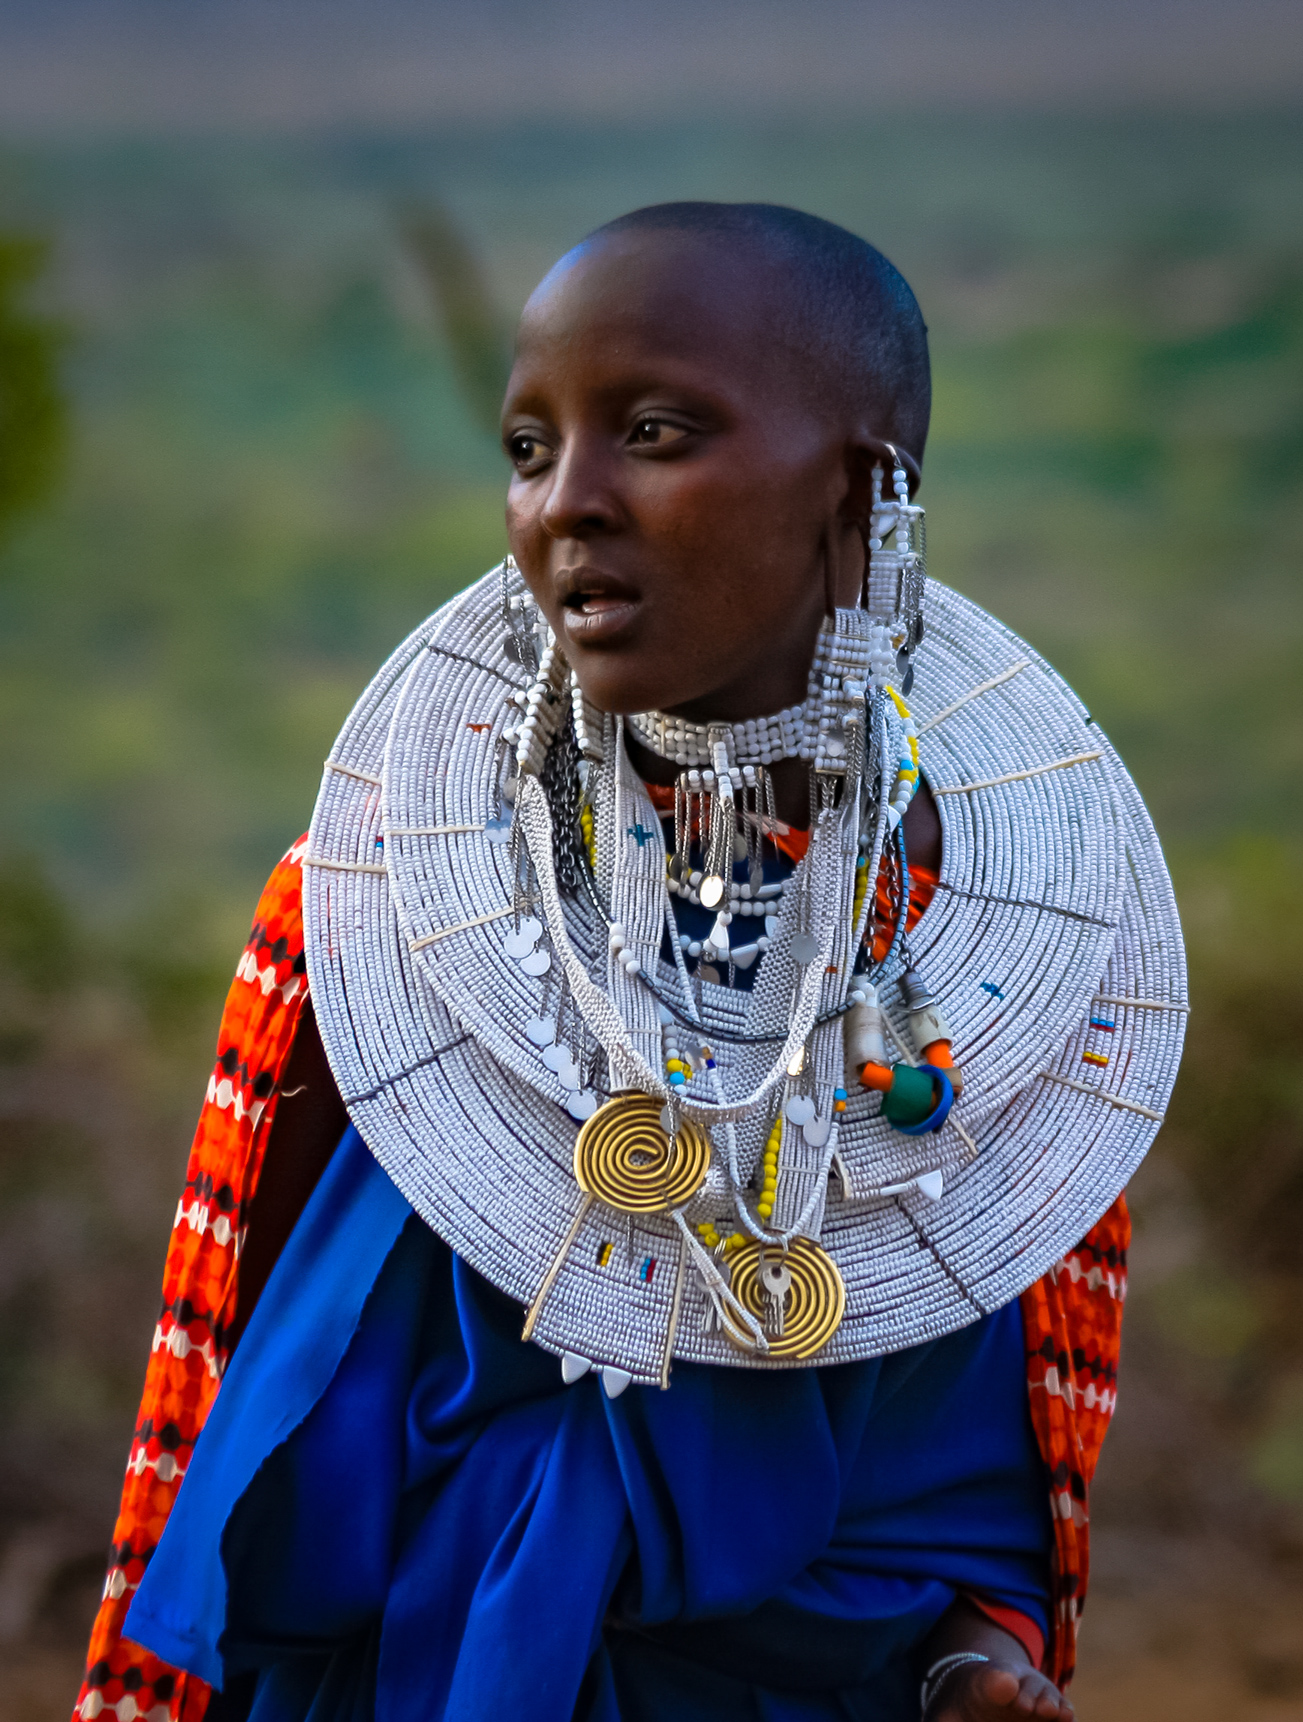 portrait of beautiful Masai women in full traditional dress in Tanzania Africa